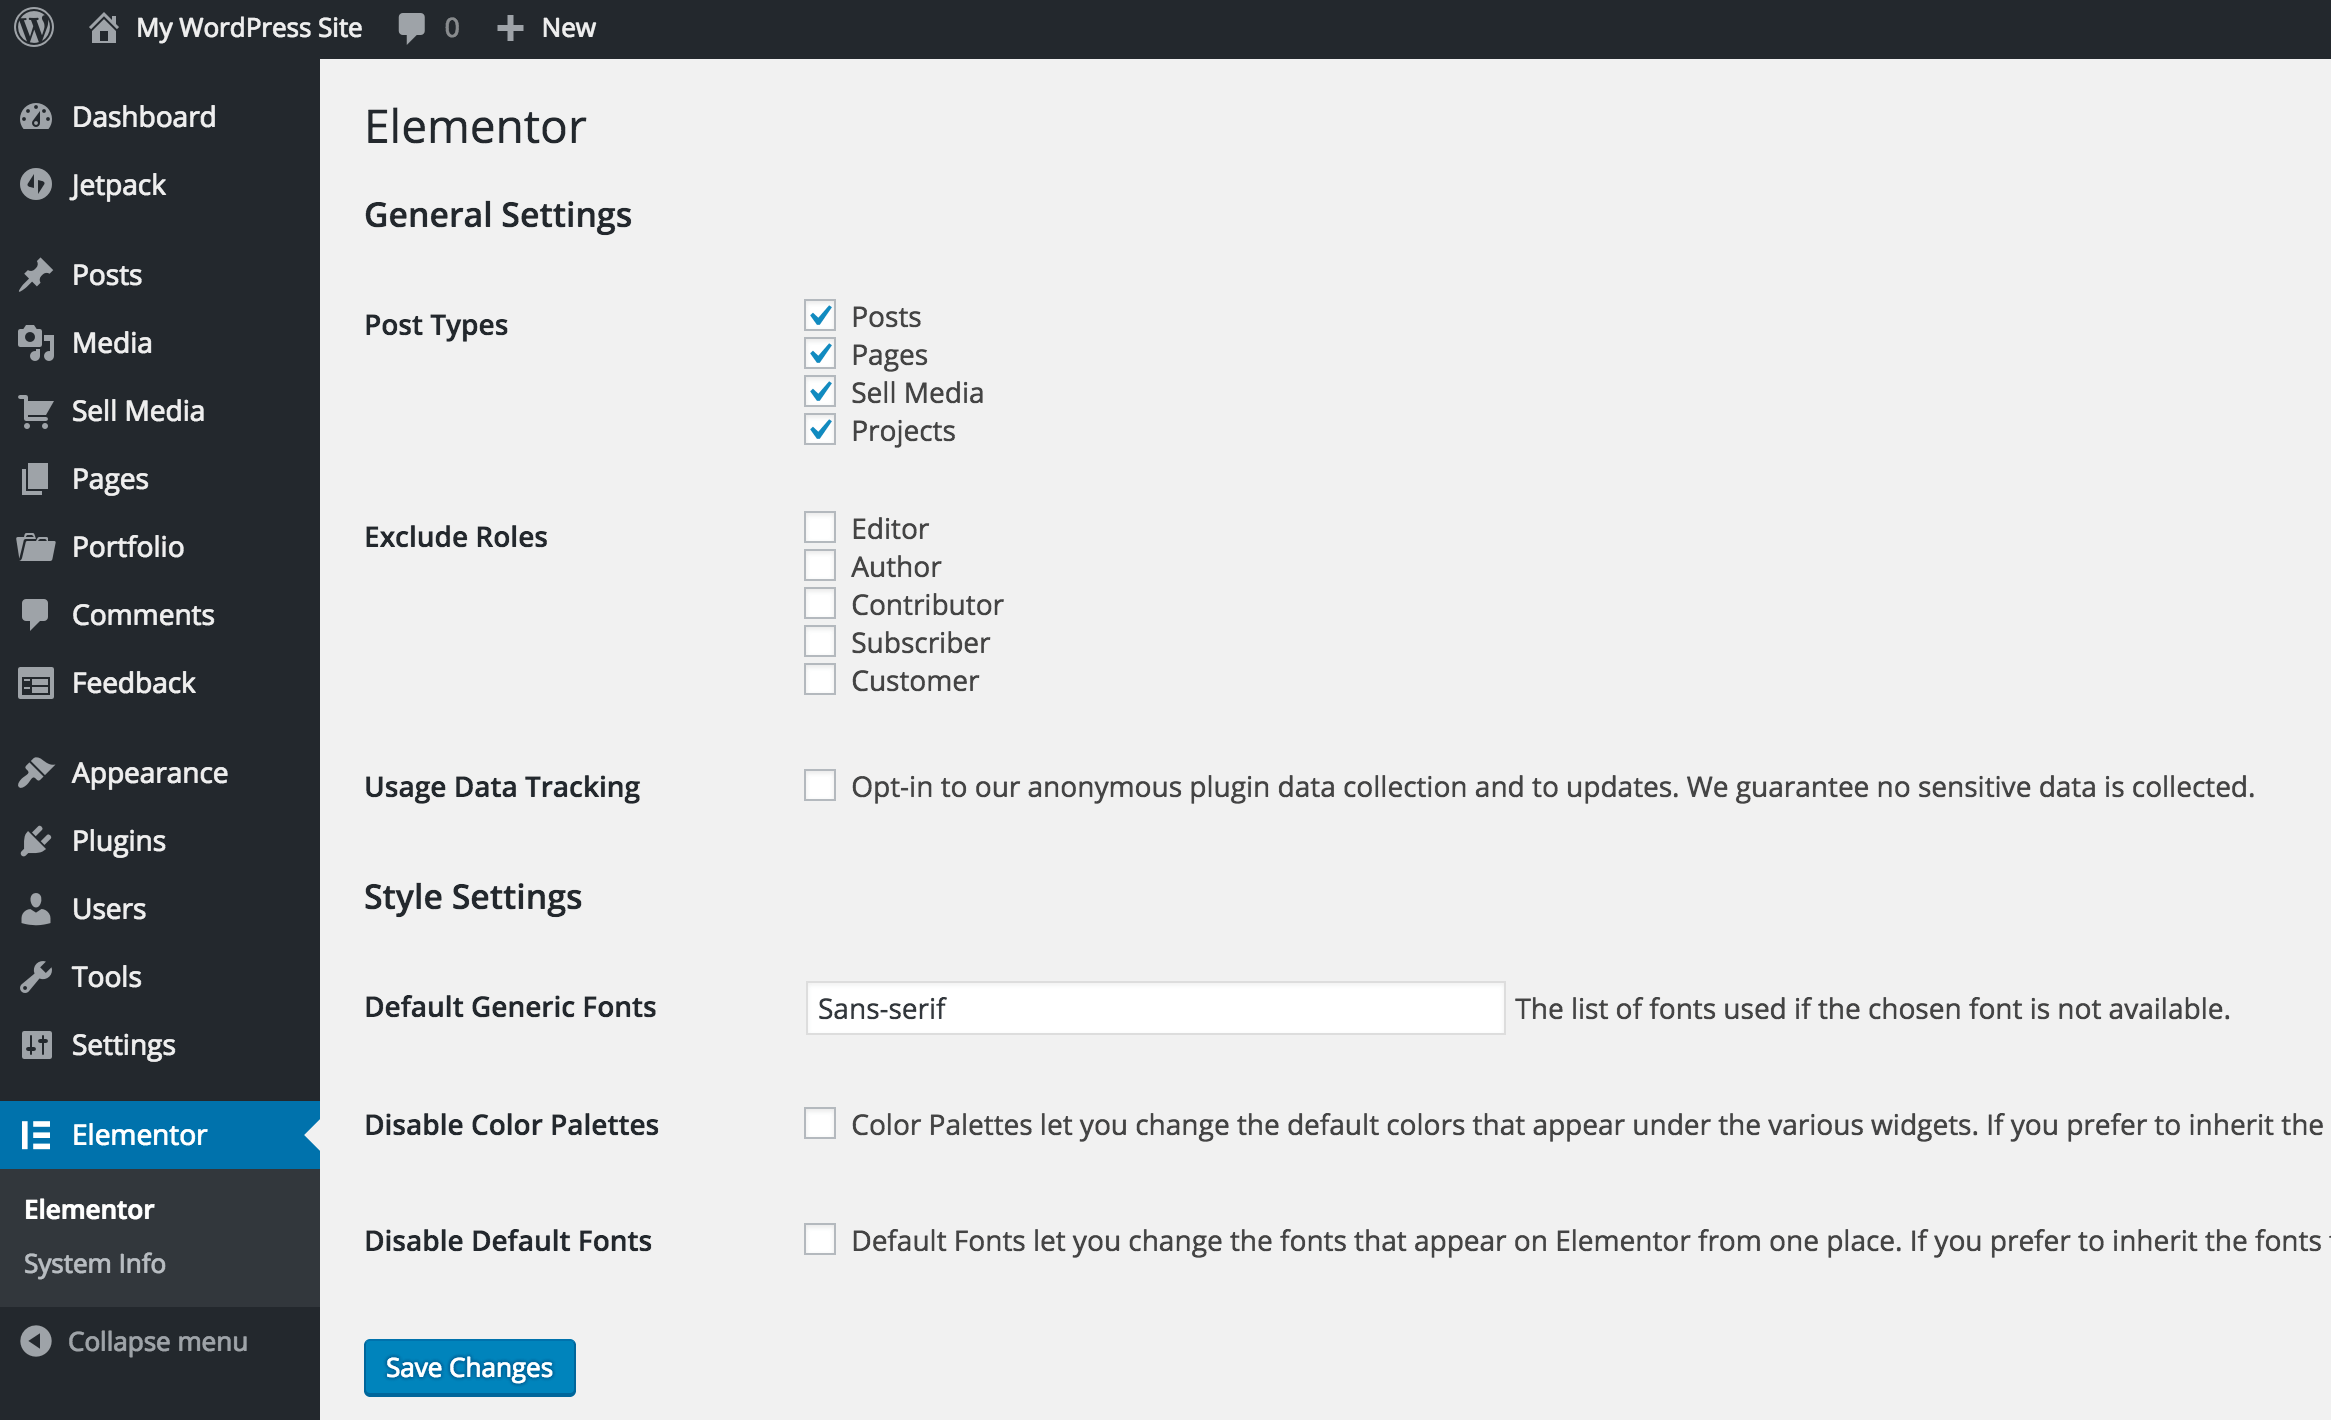 Elementor's General Settings screen.